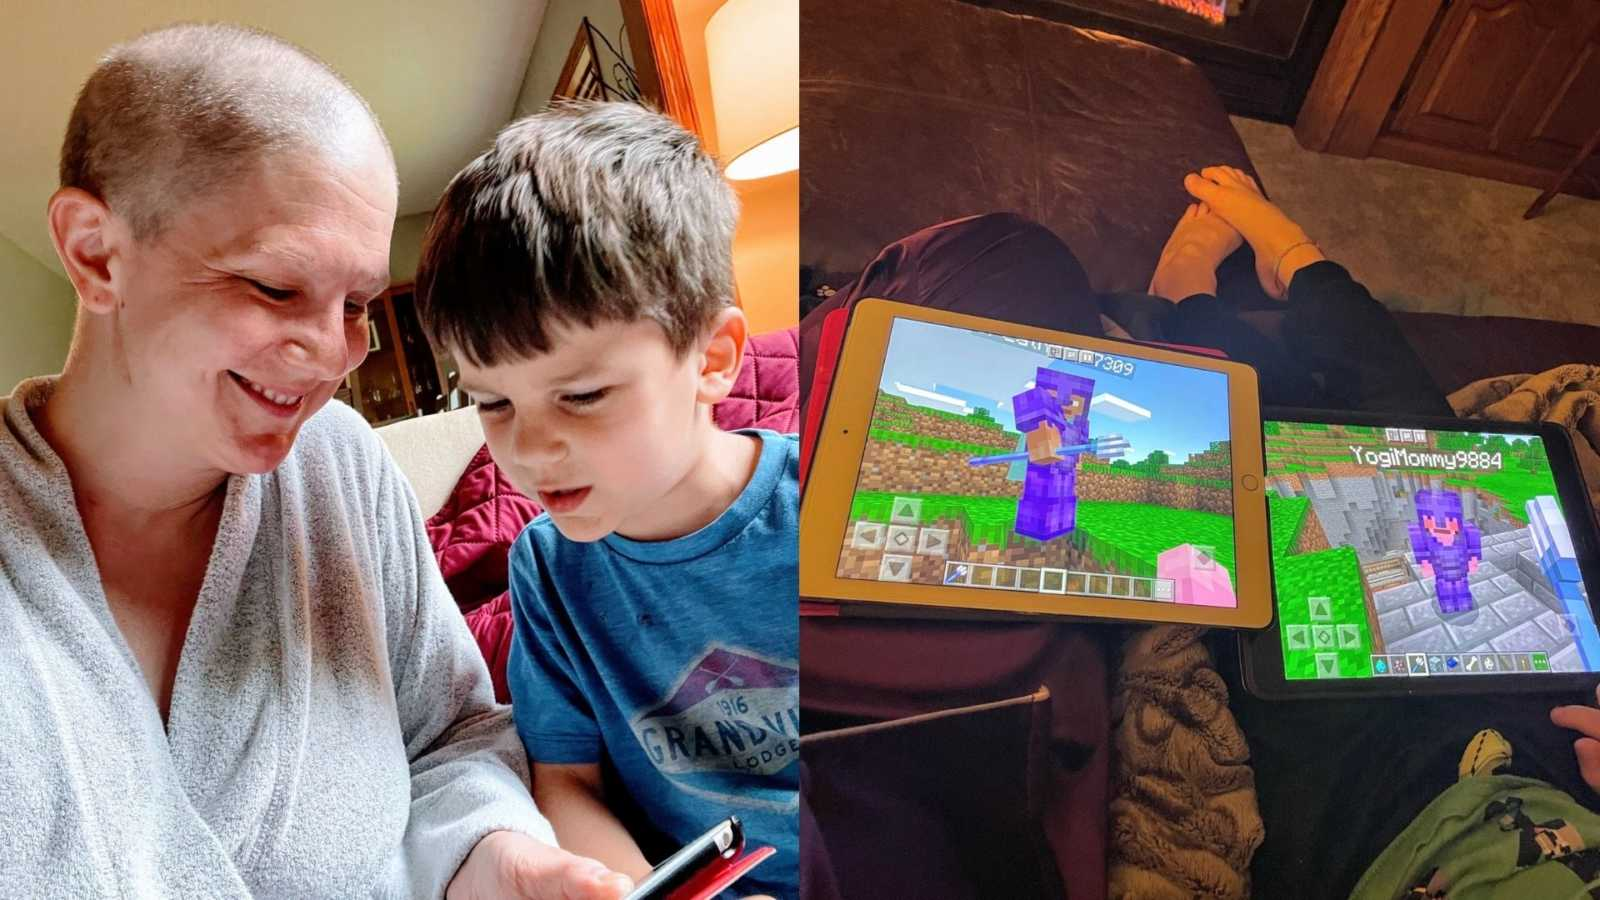 Mom and son play iPad games together while the mom is battling breast cancer